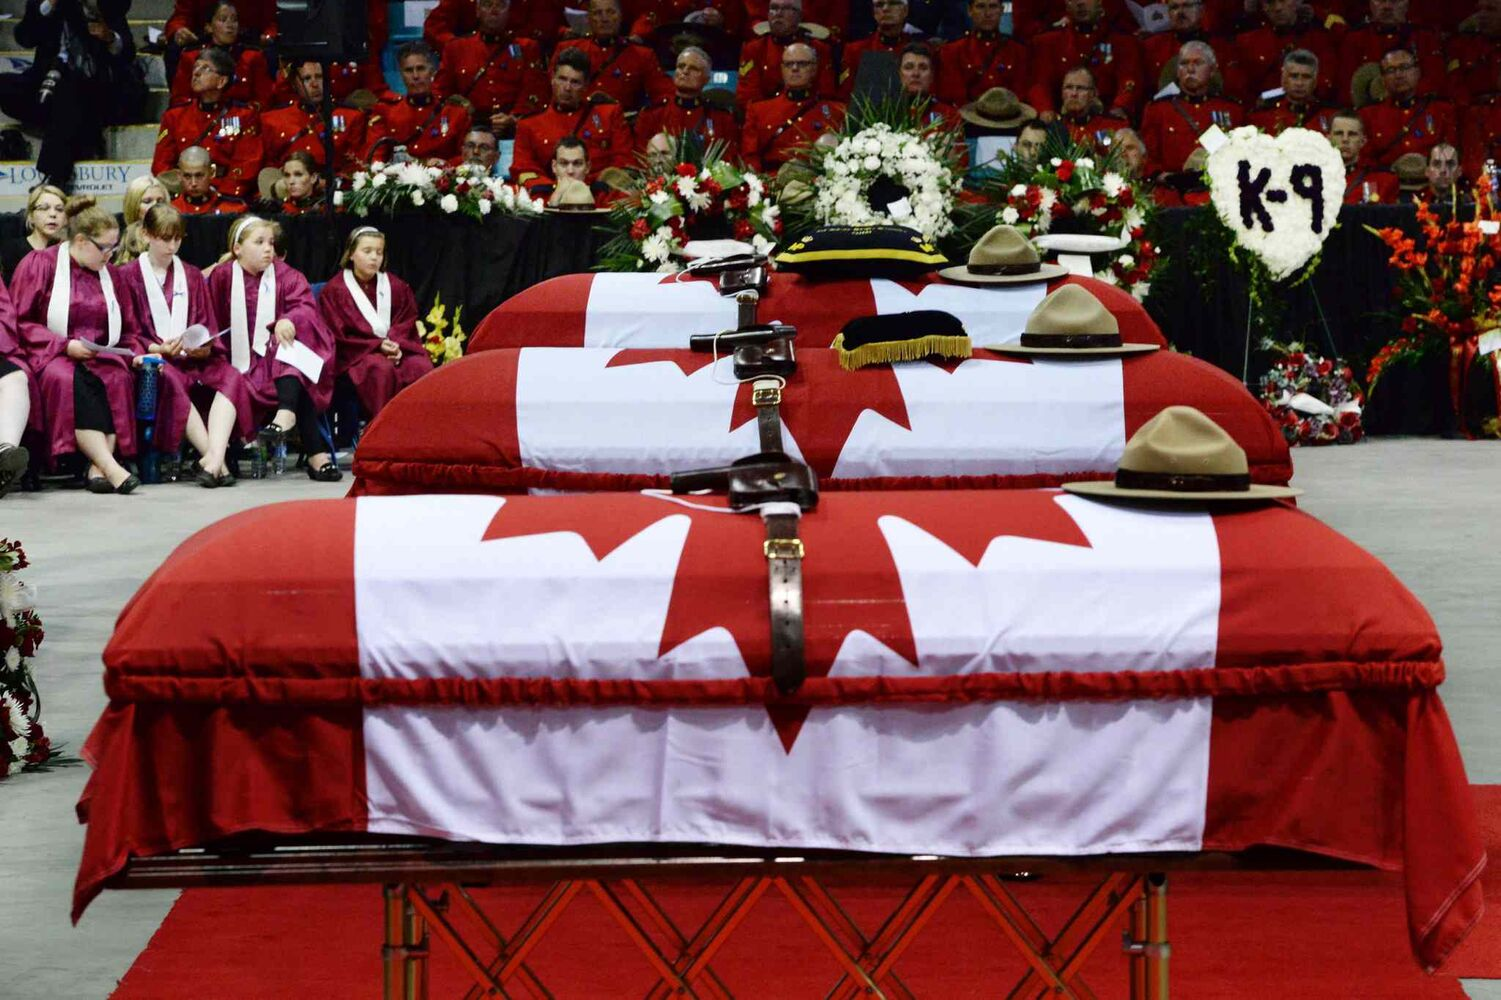 Stetsons rest on the caskets of the three slain RCMP officers, Const Dave Ross, Const. Douglas Larche and Const. Fabrice Gevaudan. (Sean Kilpatrick / The Canadian Press)